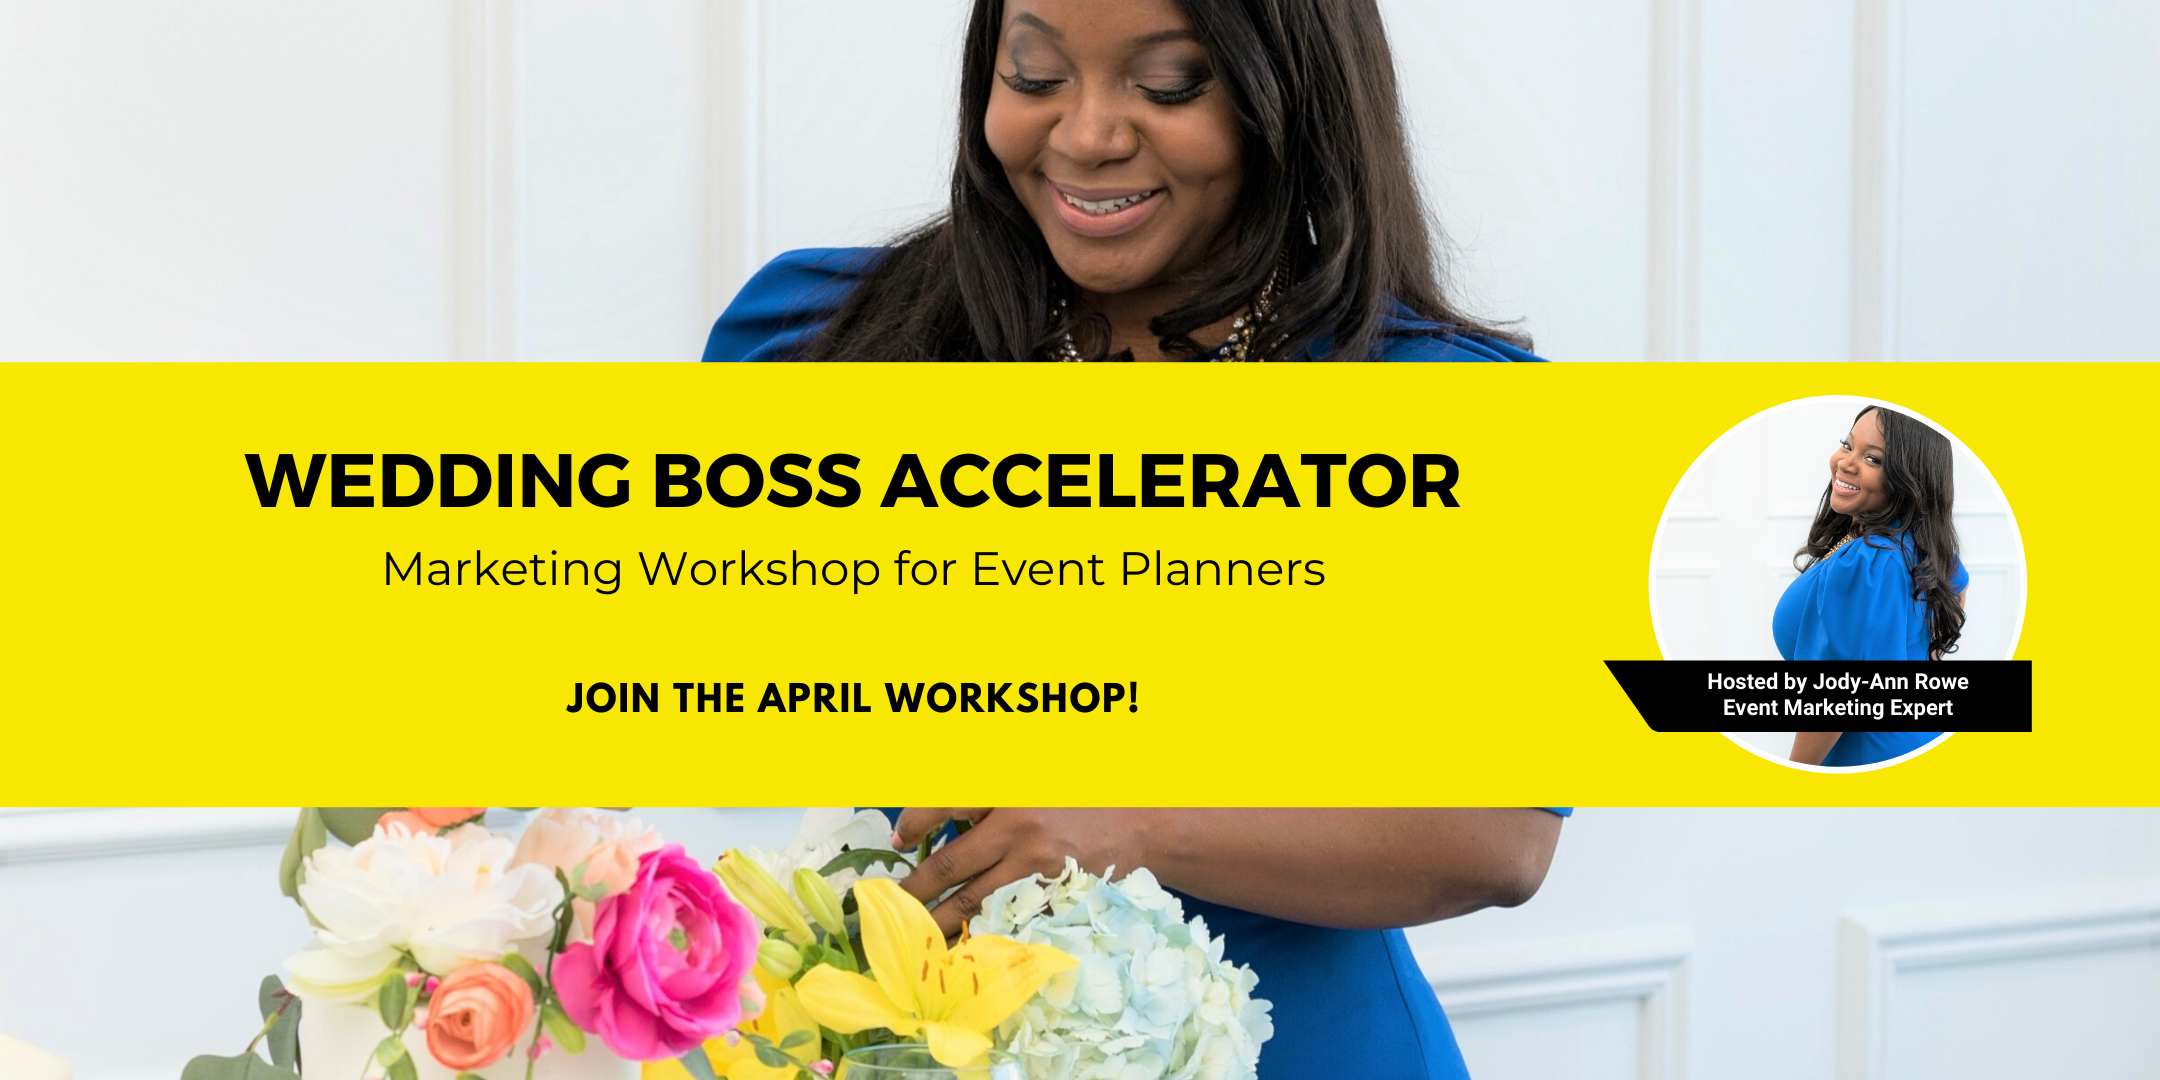 Wedding Boss Accelerator: A Marketing Workshop for Event Planners